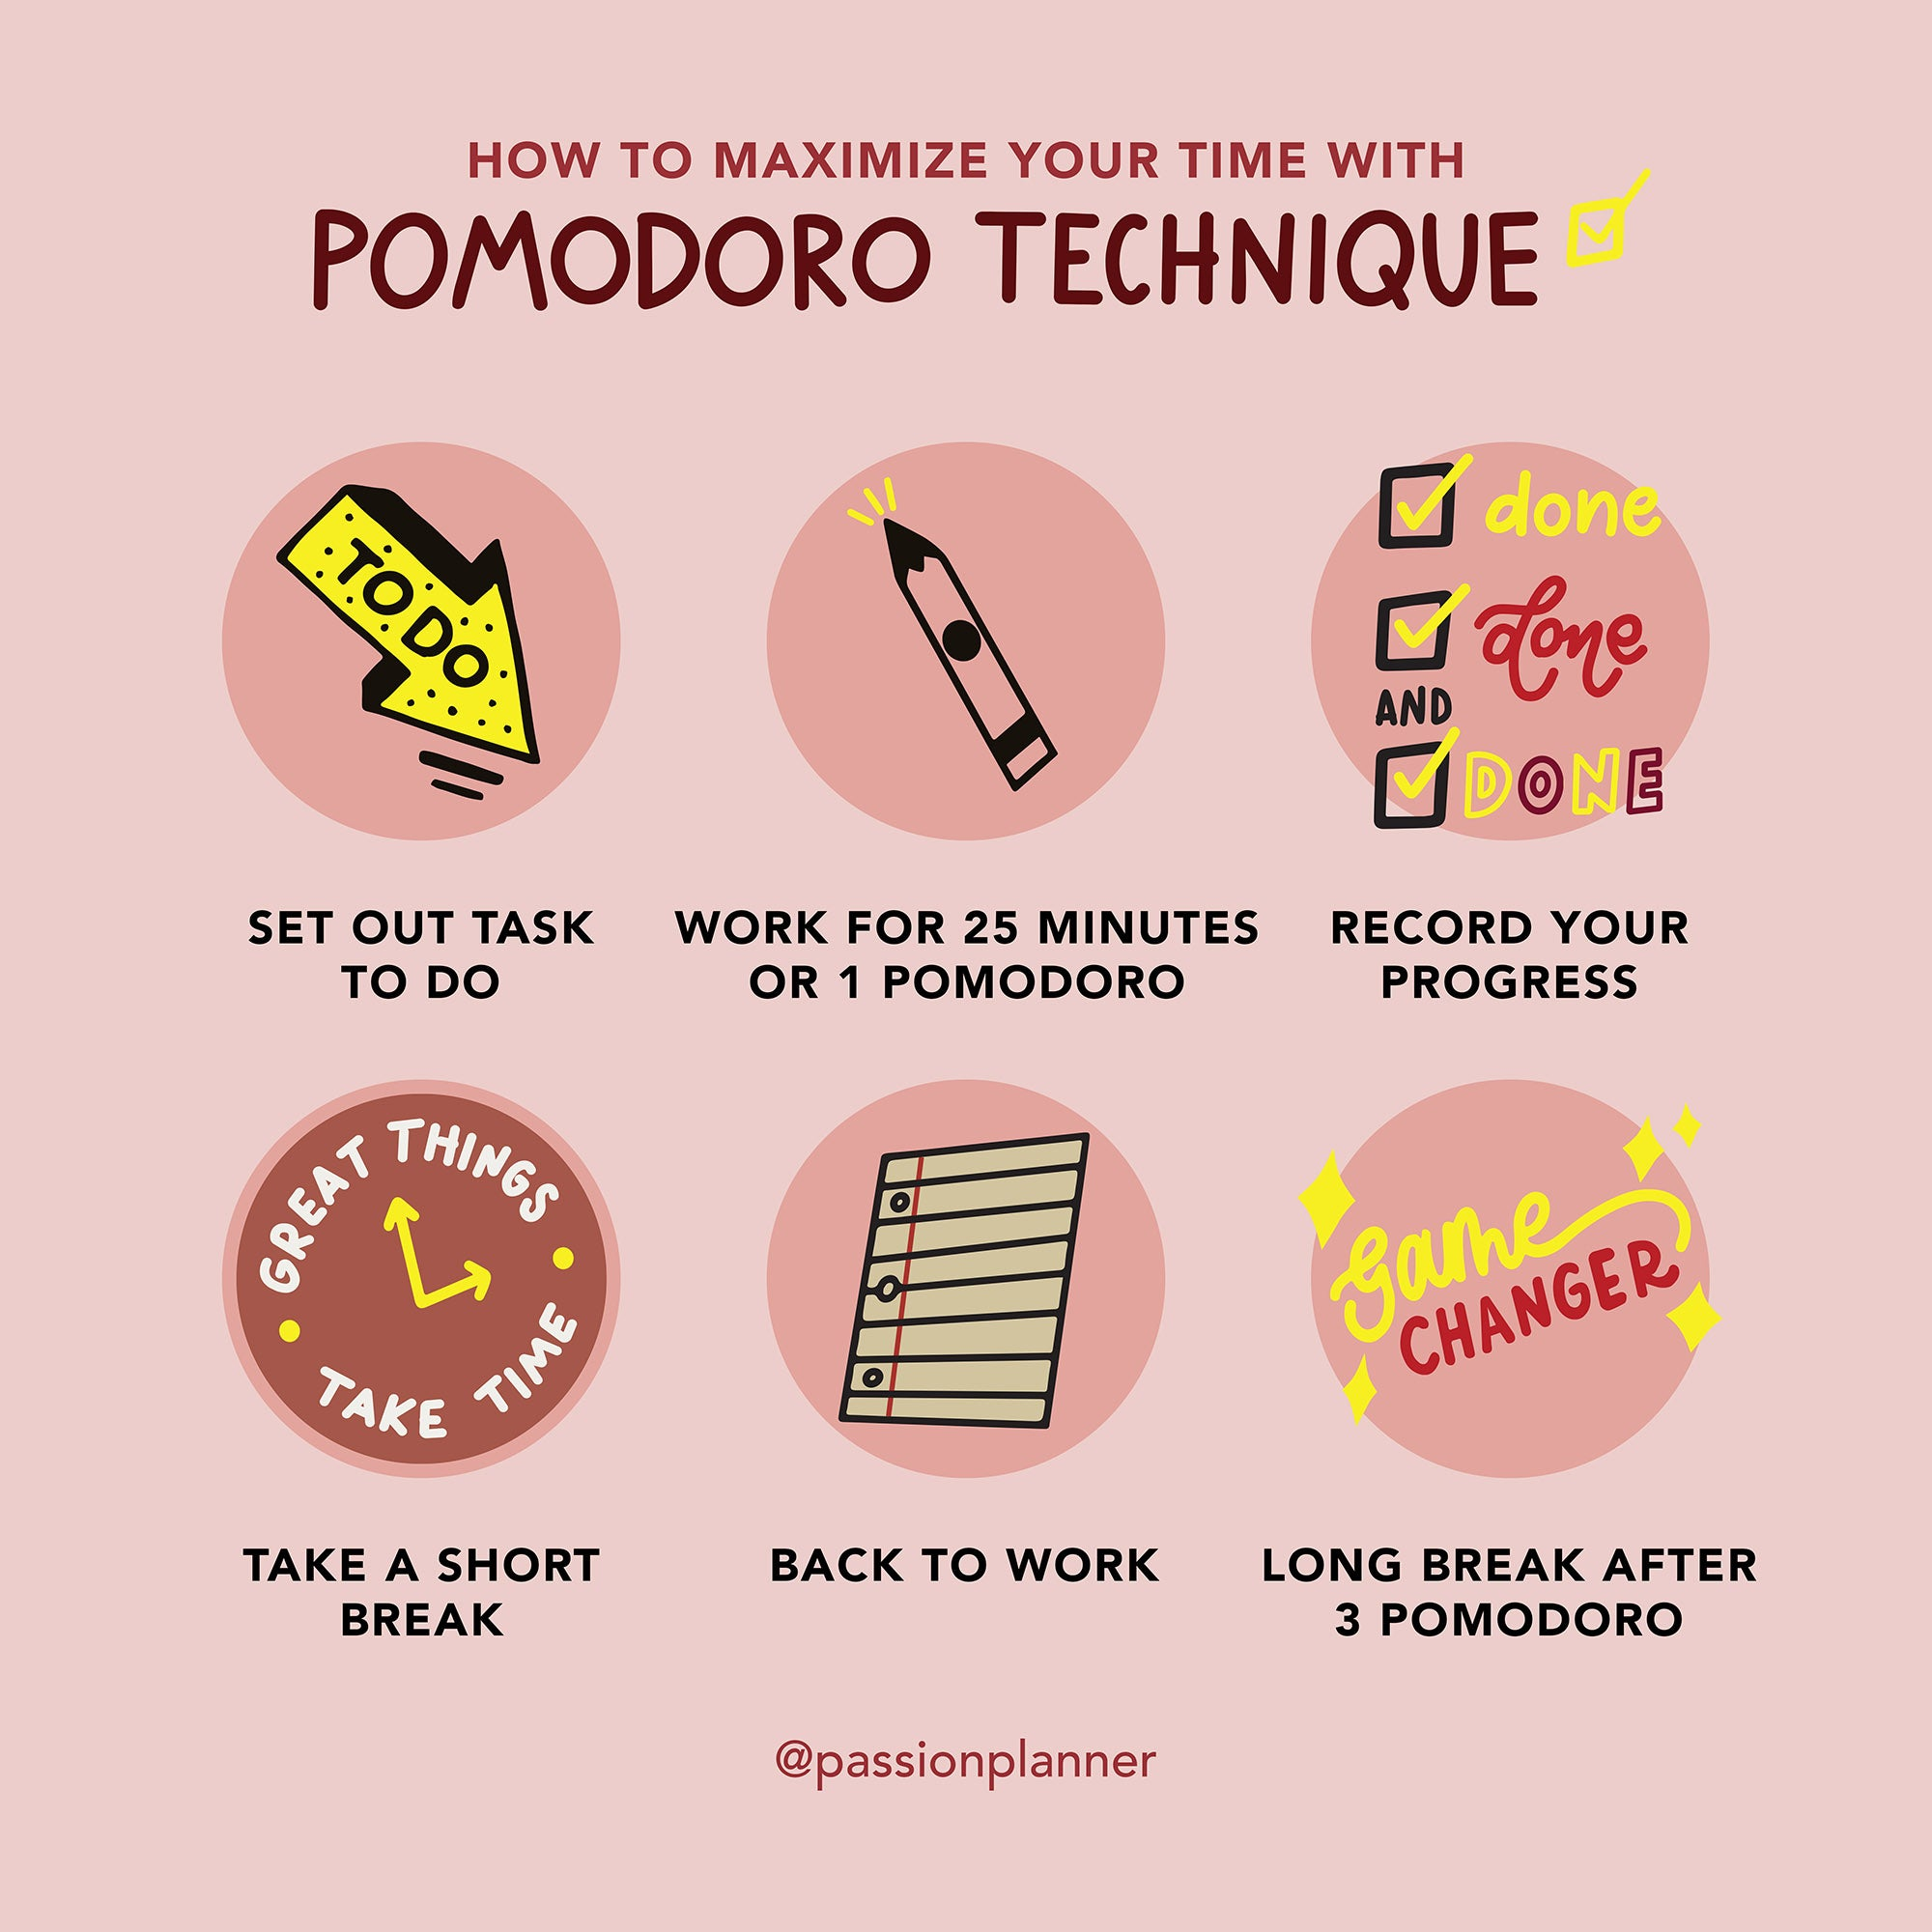 How to Maximize Your Time with the Pomodoro Technique: 1. Set out your tasks to do. 2. Work for 25 minutes (1 pomodoro). 3. Record your progress. 4. Take a short break. 5. Get back to work! 6. Take a long break after a few pomodoros.